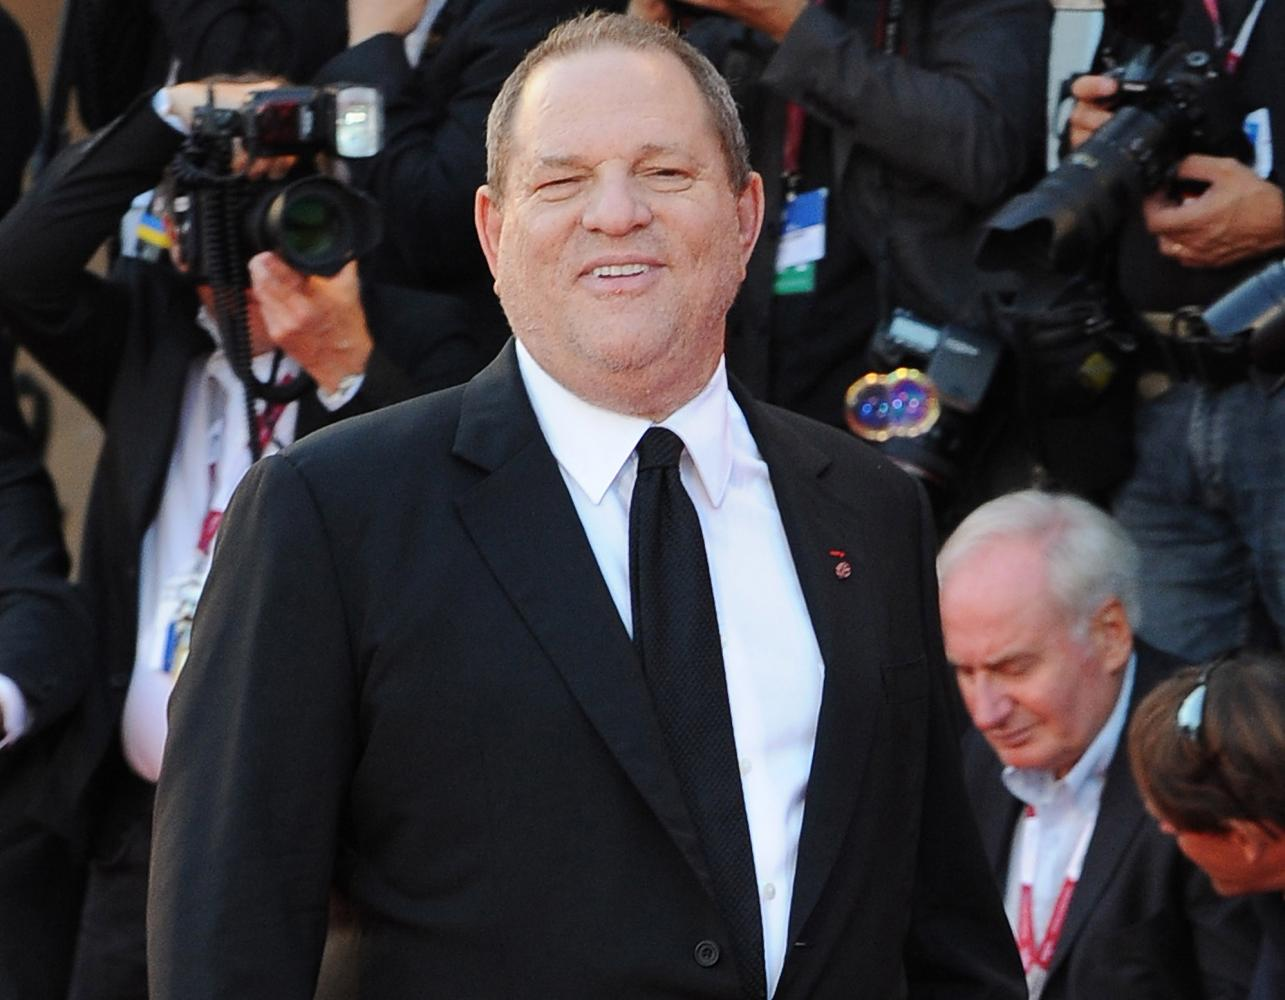 Movie producer Harvey Weinstein has recently been the subject of multiple sexual assault allegations.